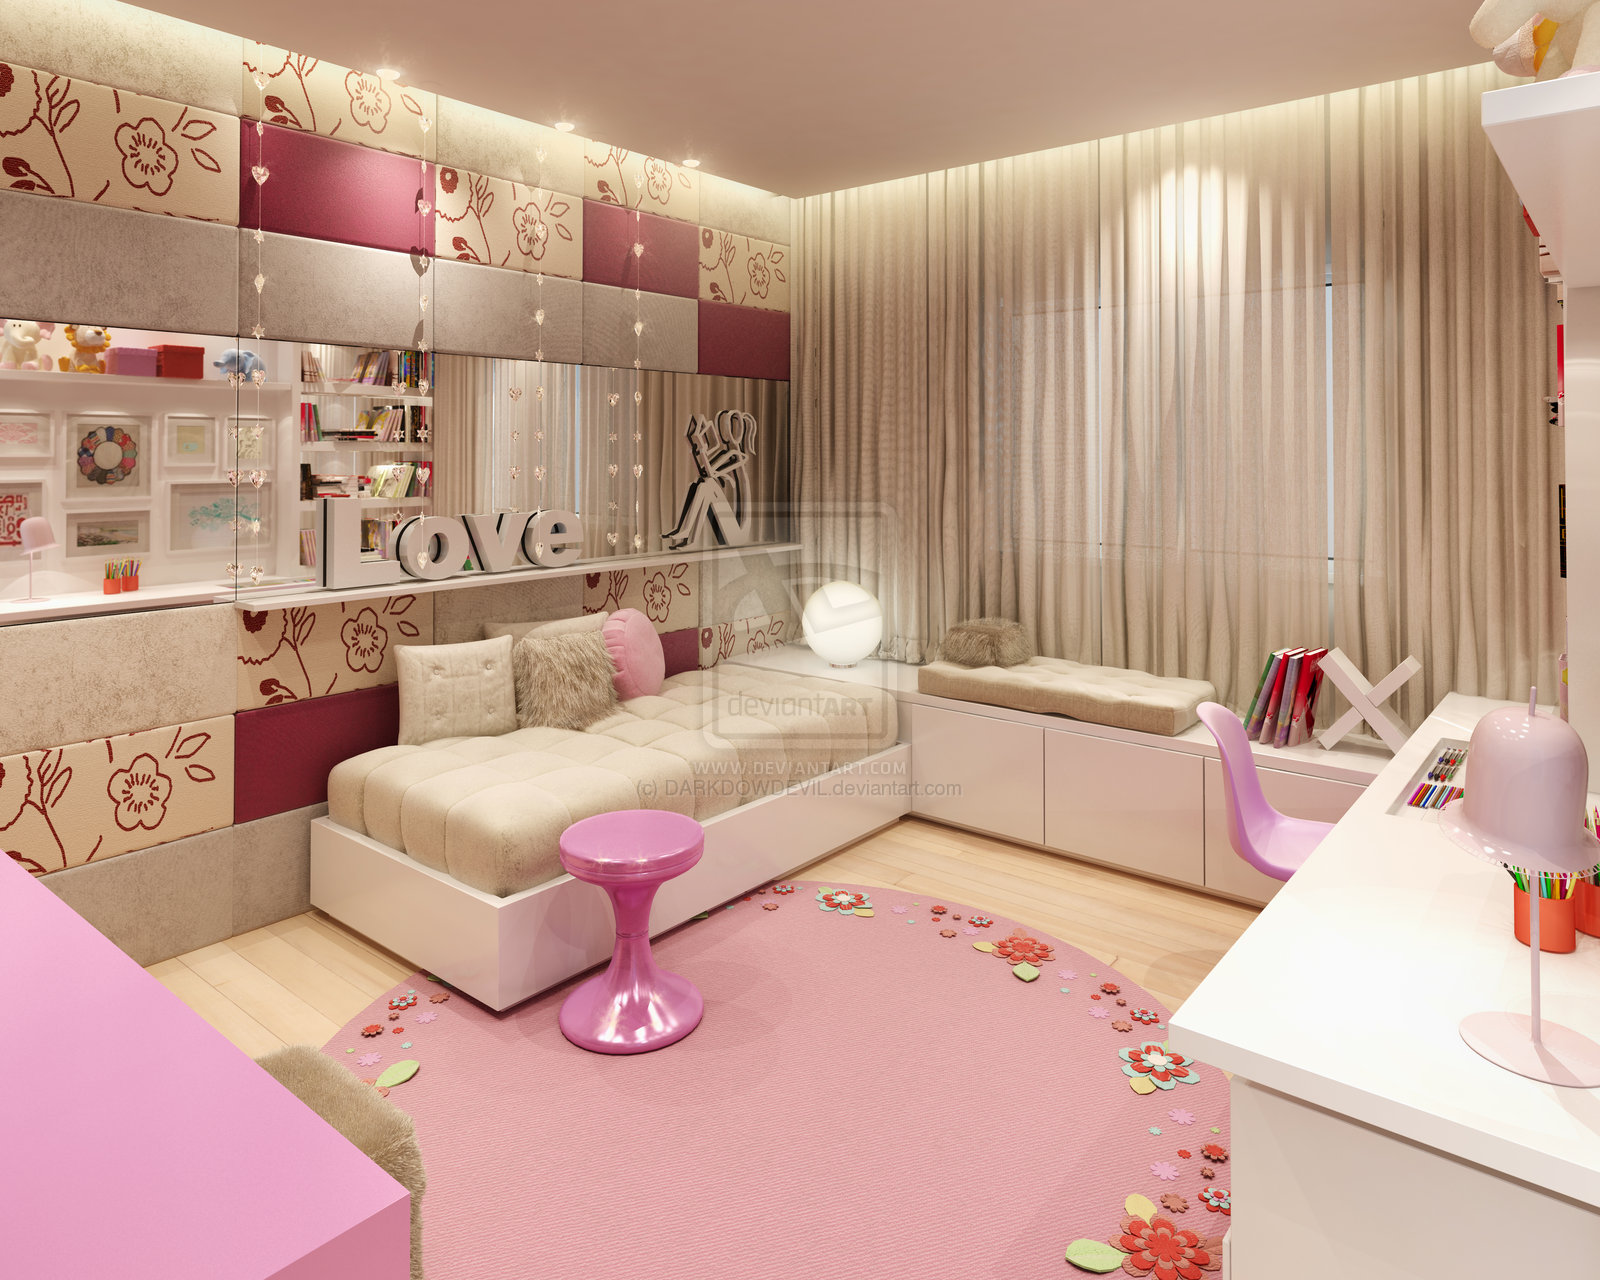 Best girl bedrooms in the world home decor and interior for Girls bedroom decor ideas